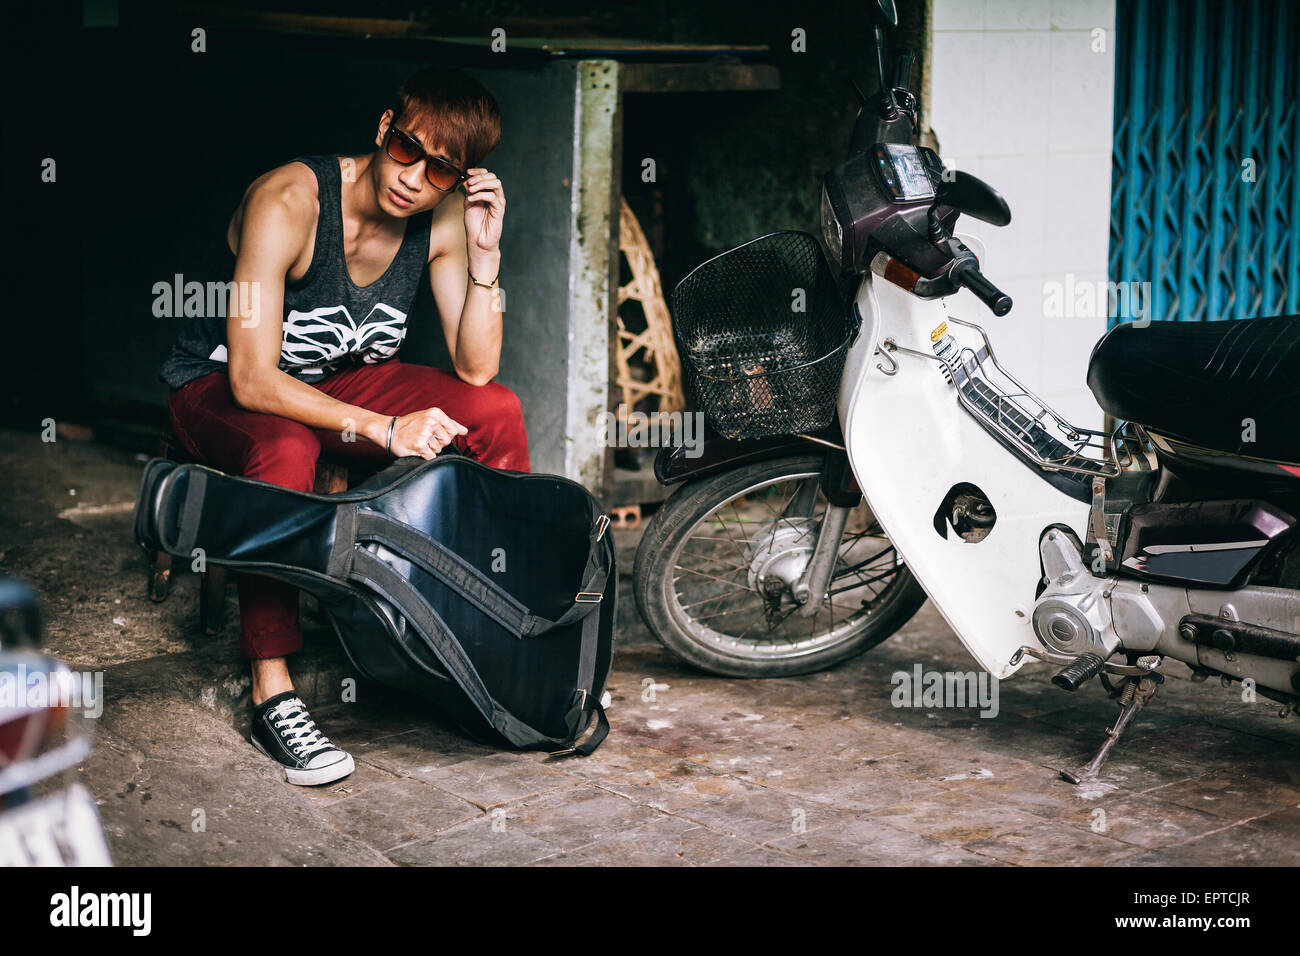 35ccb664bf asian fashion street teenager in style sunglasses with guitar case and  motorbike